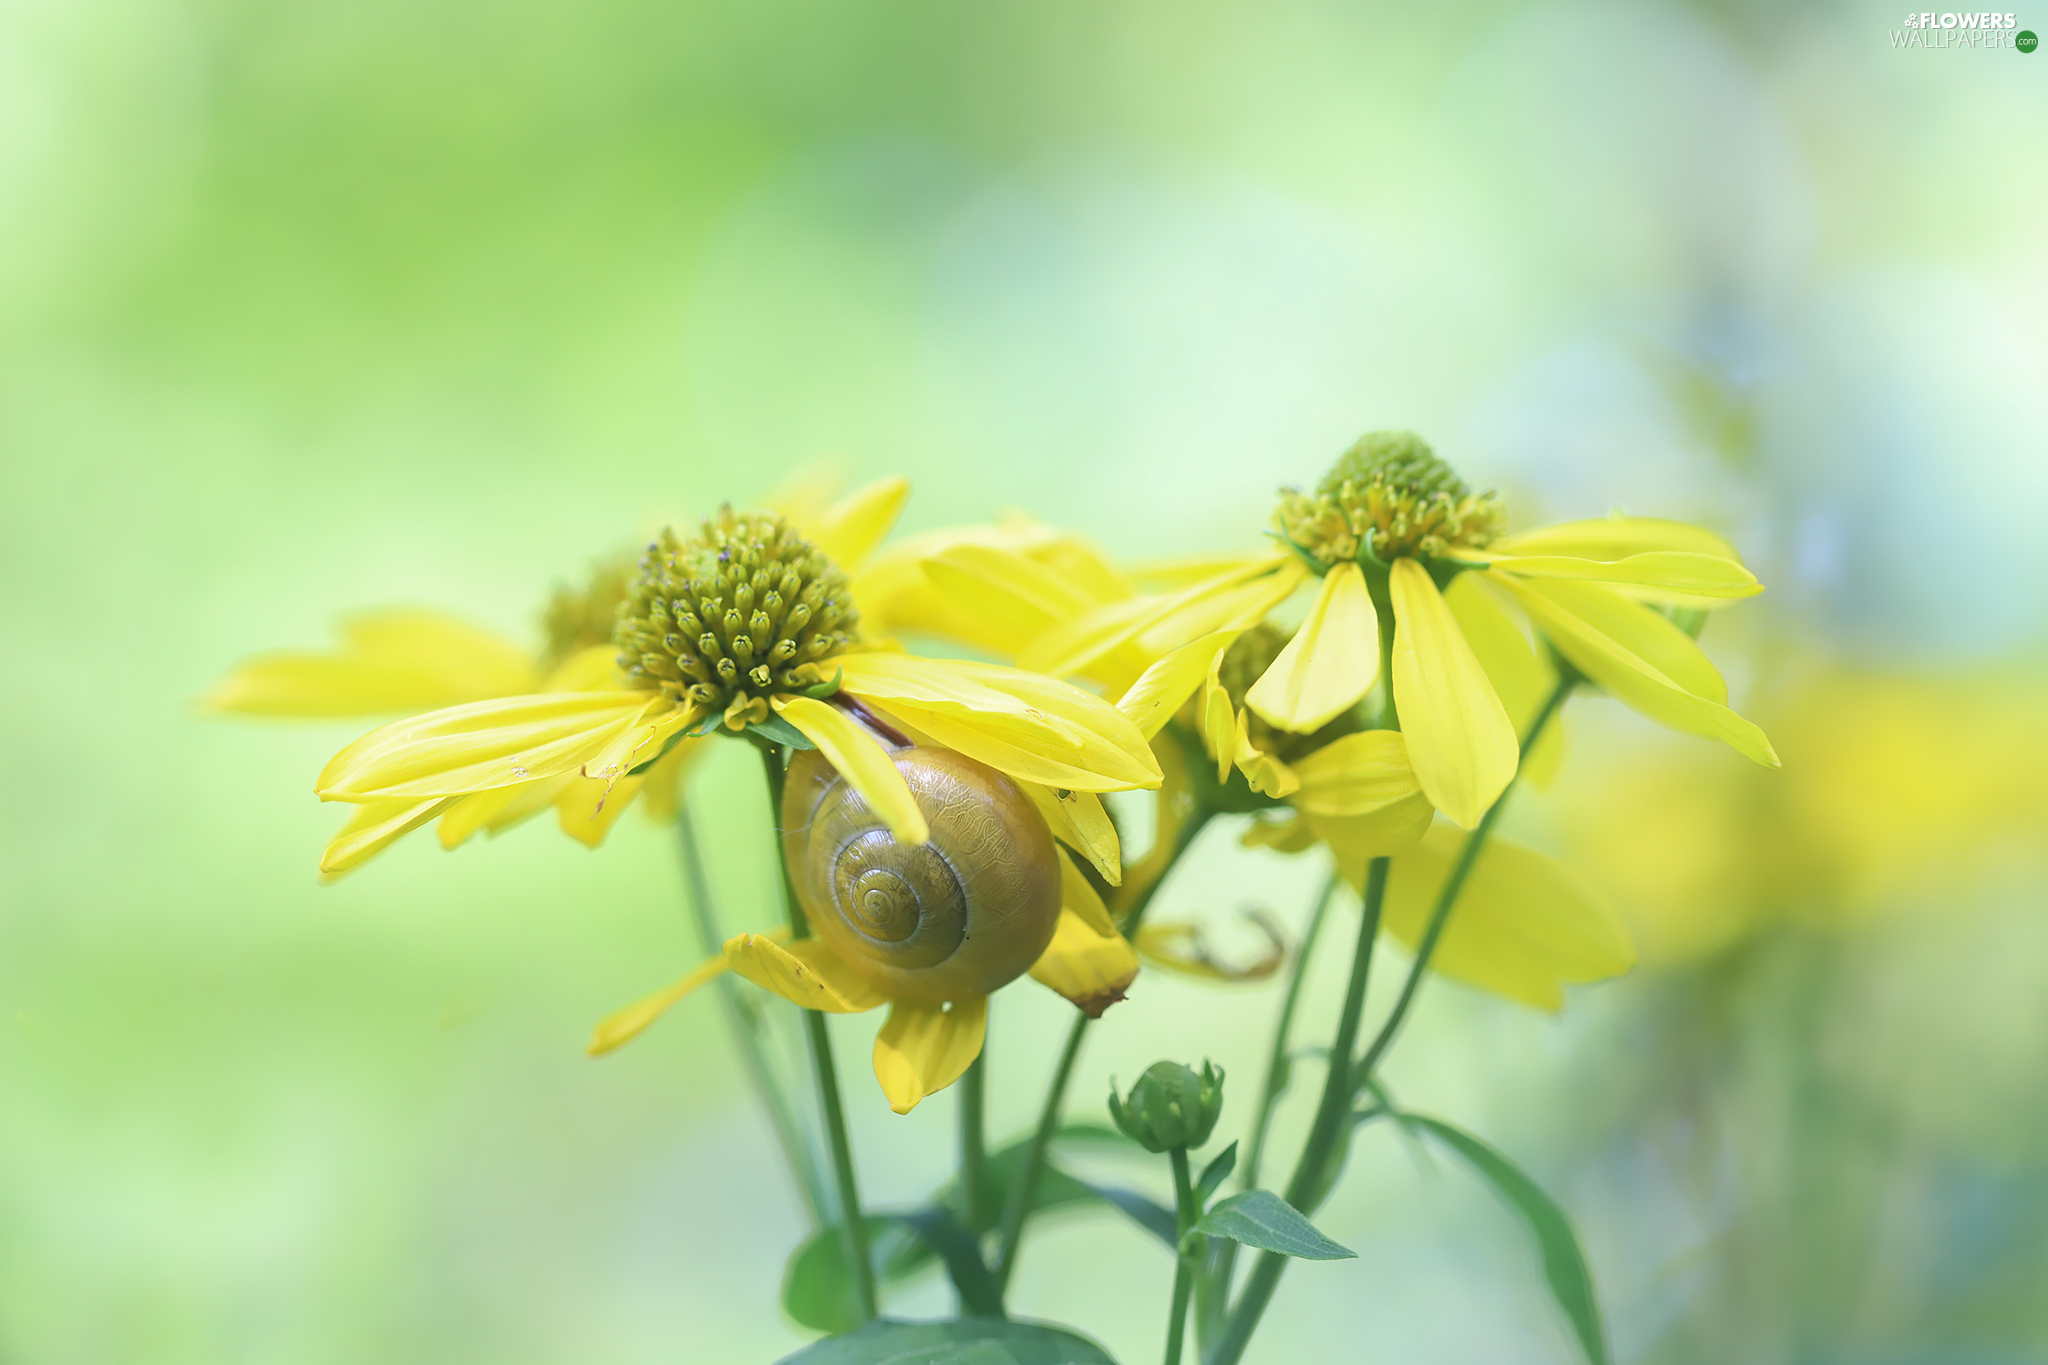 Rudbeckia, Flowers, snail, Yellow